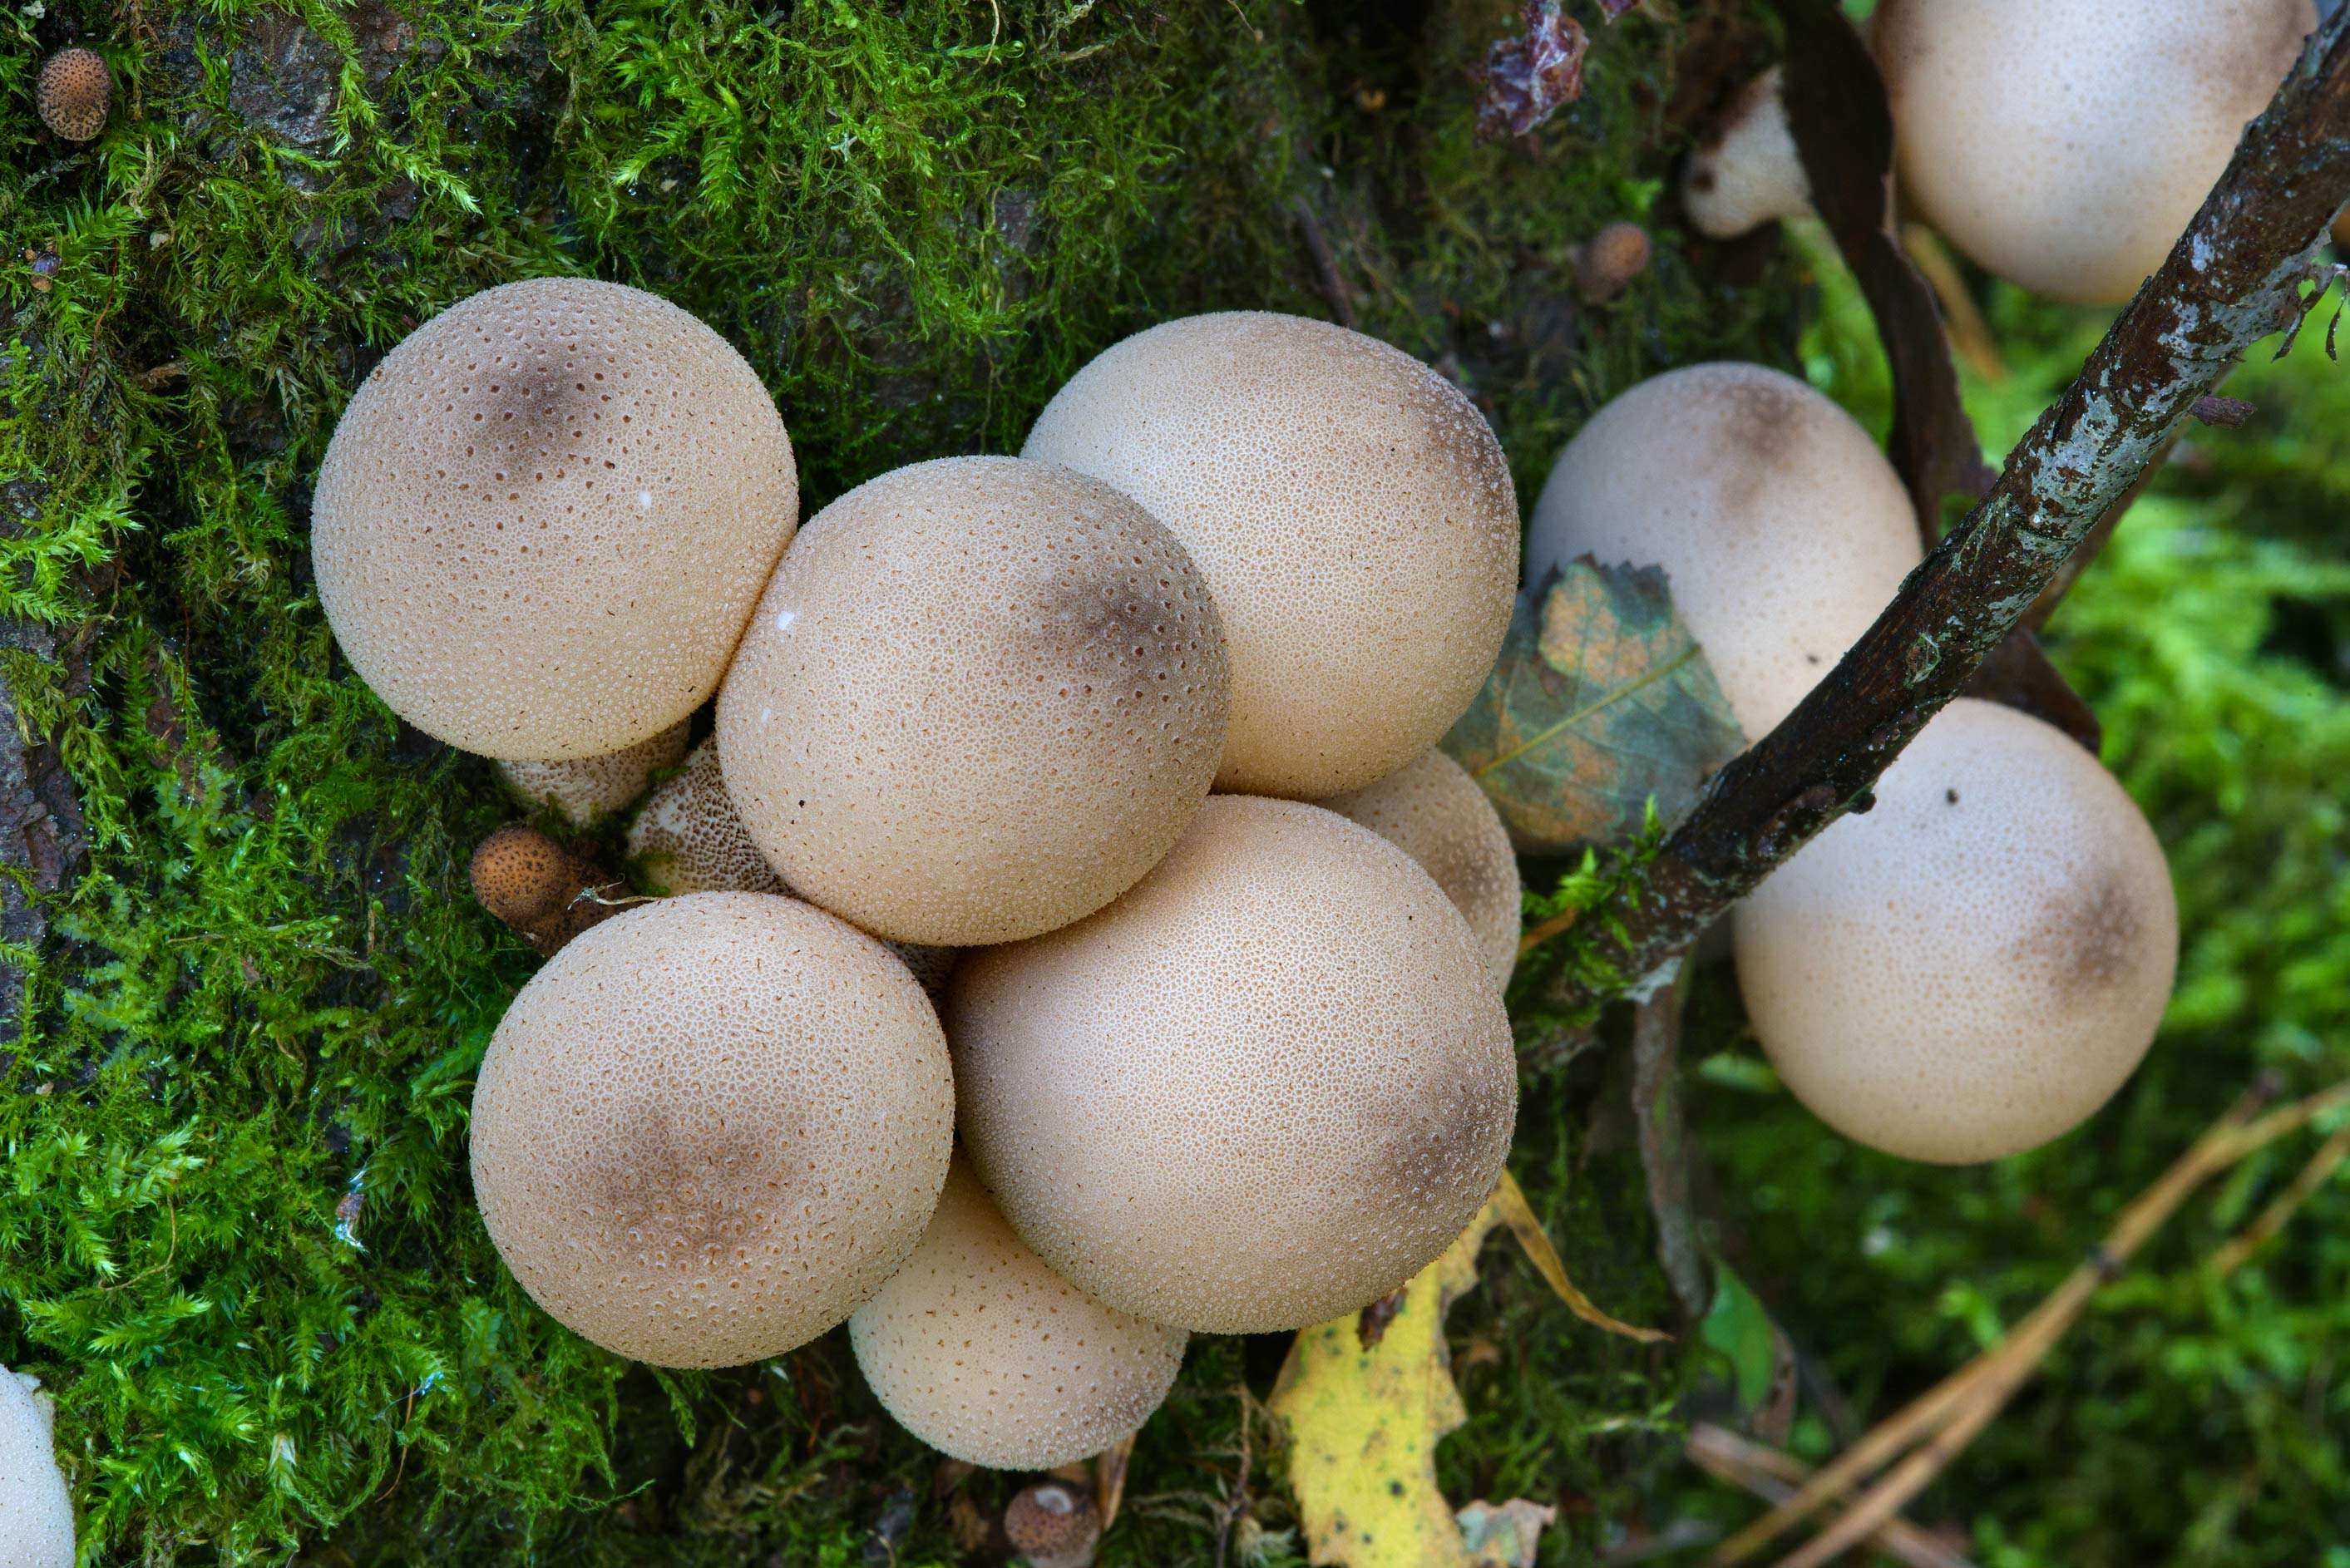 Pear-shaped puffball mushrooms (Lycoperdon...in northern St.Petersburg. Russia